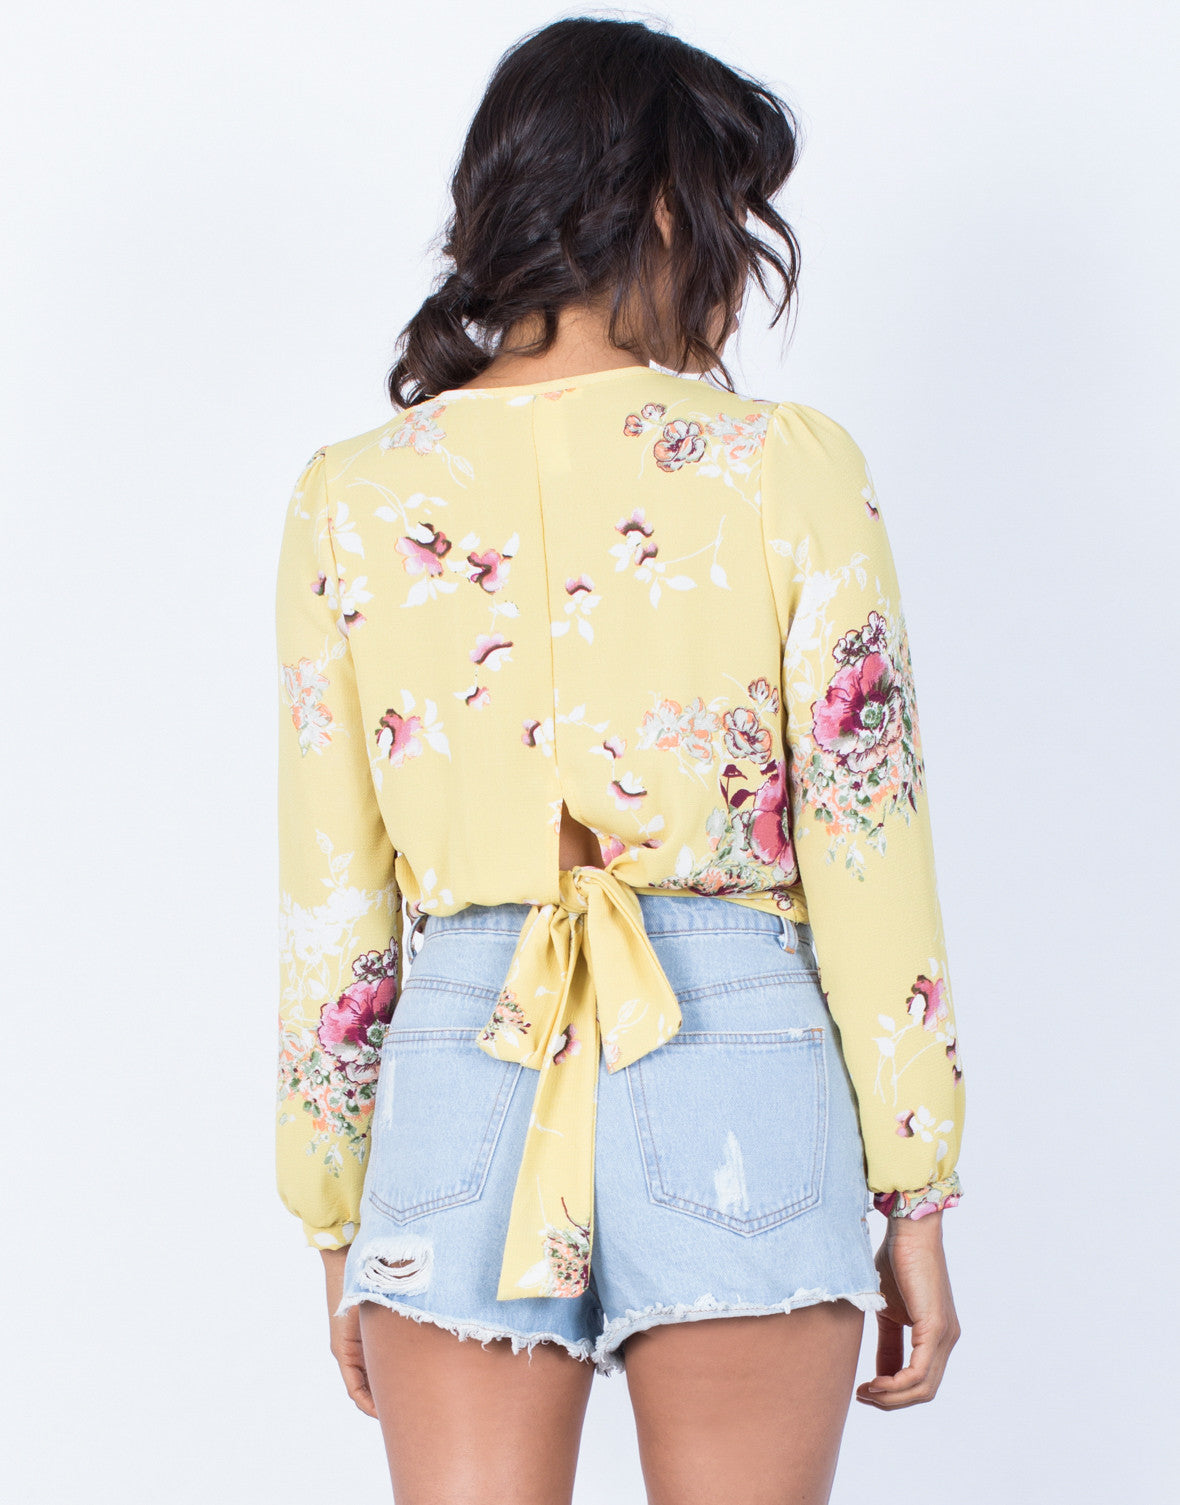 Back View of Golden Girl Floral Blouse